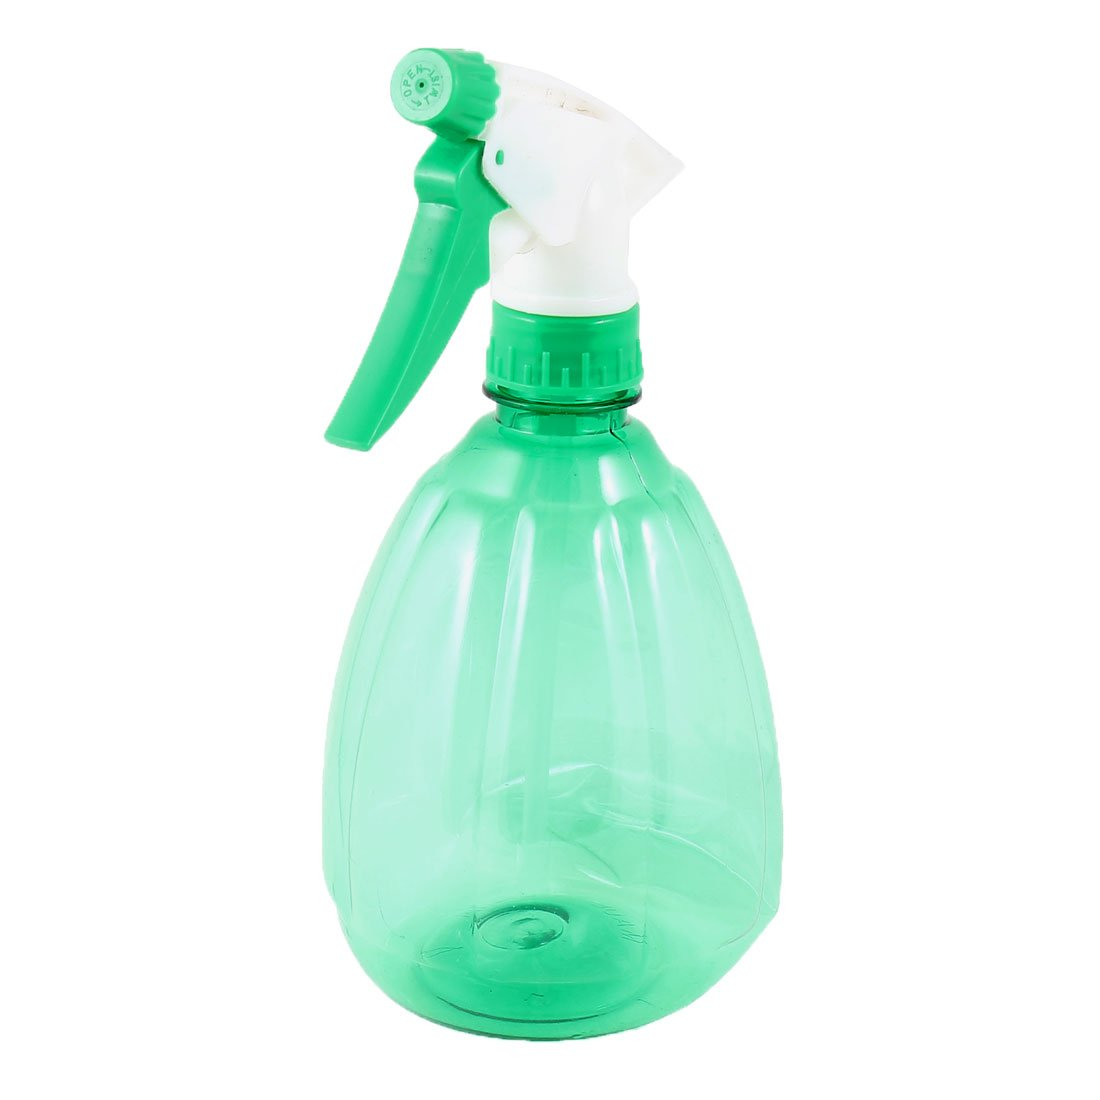 uxcell Plastic Trigger Flower Water Spray Bottle 550ml Two Tone Green a13060300ux0081